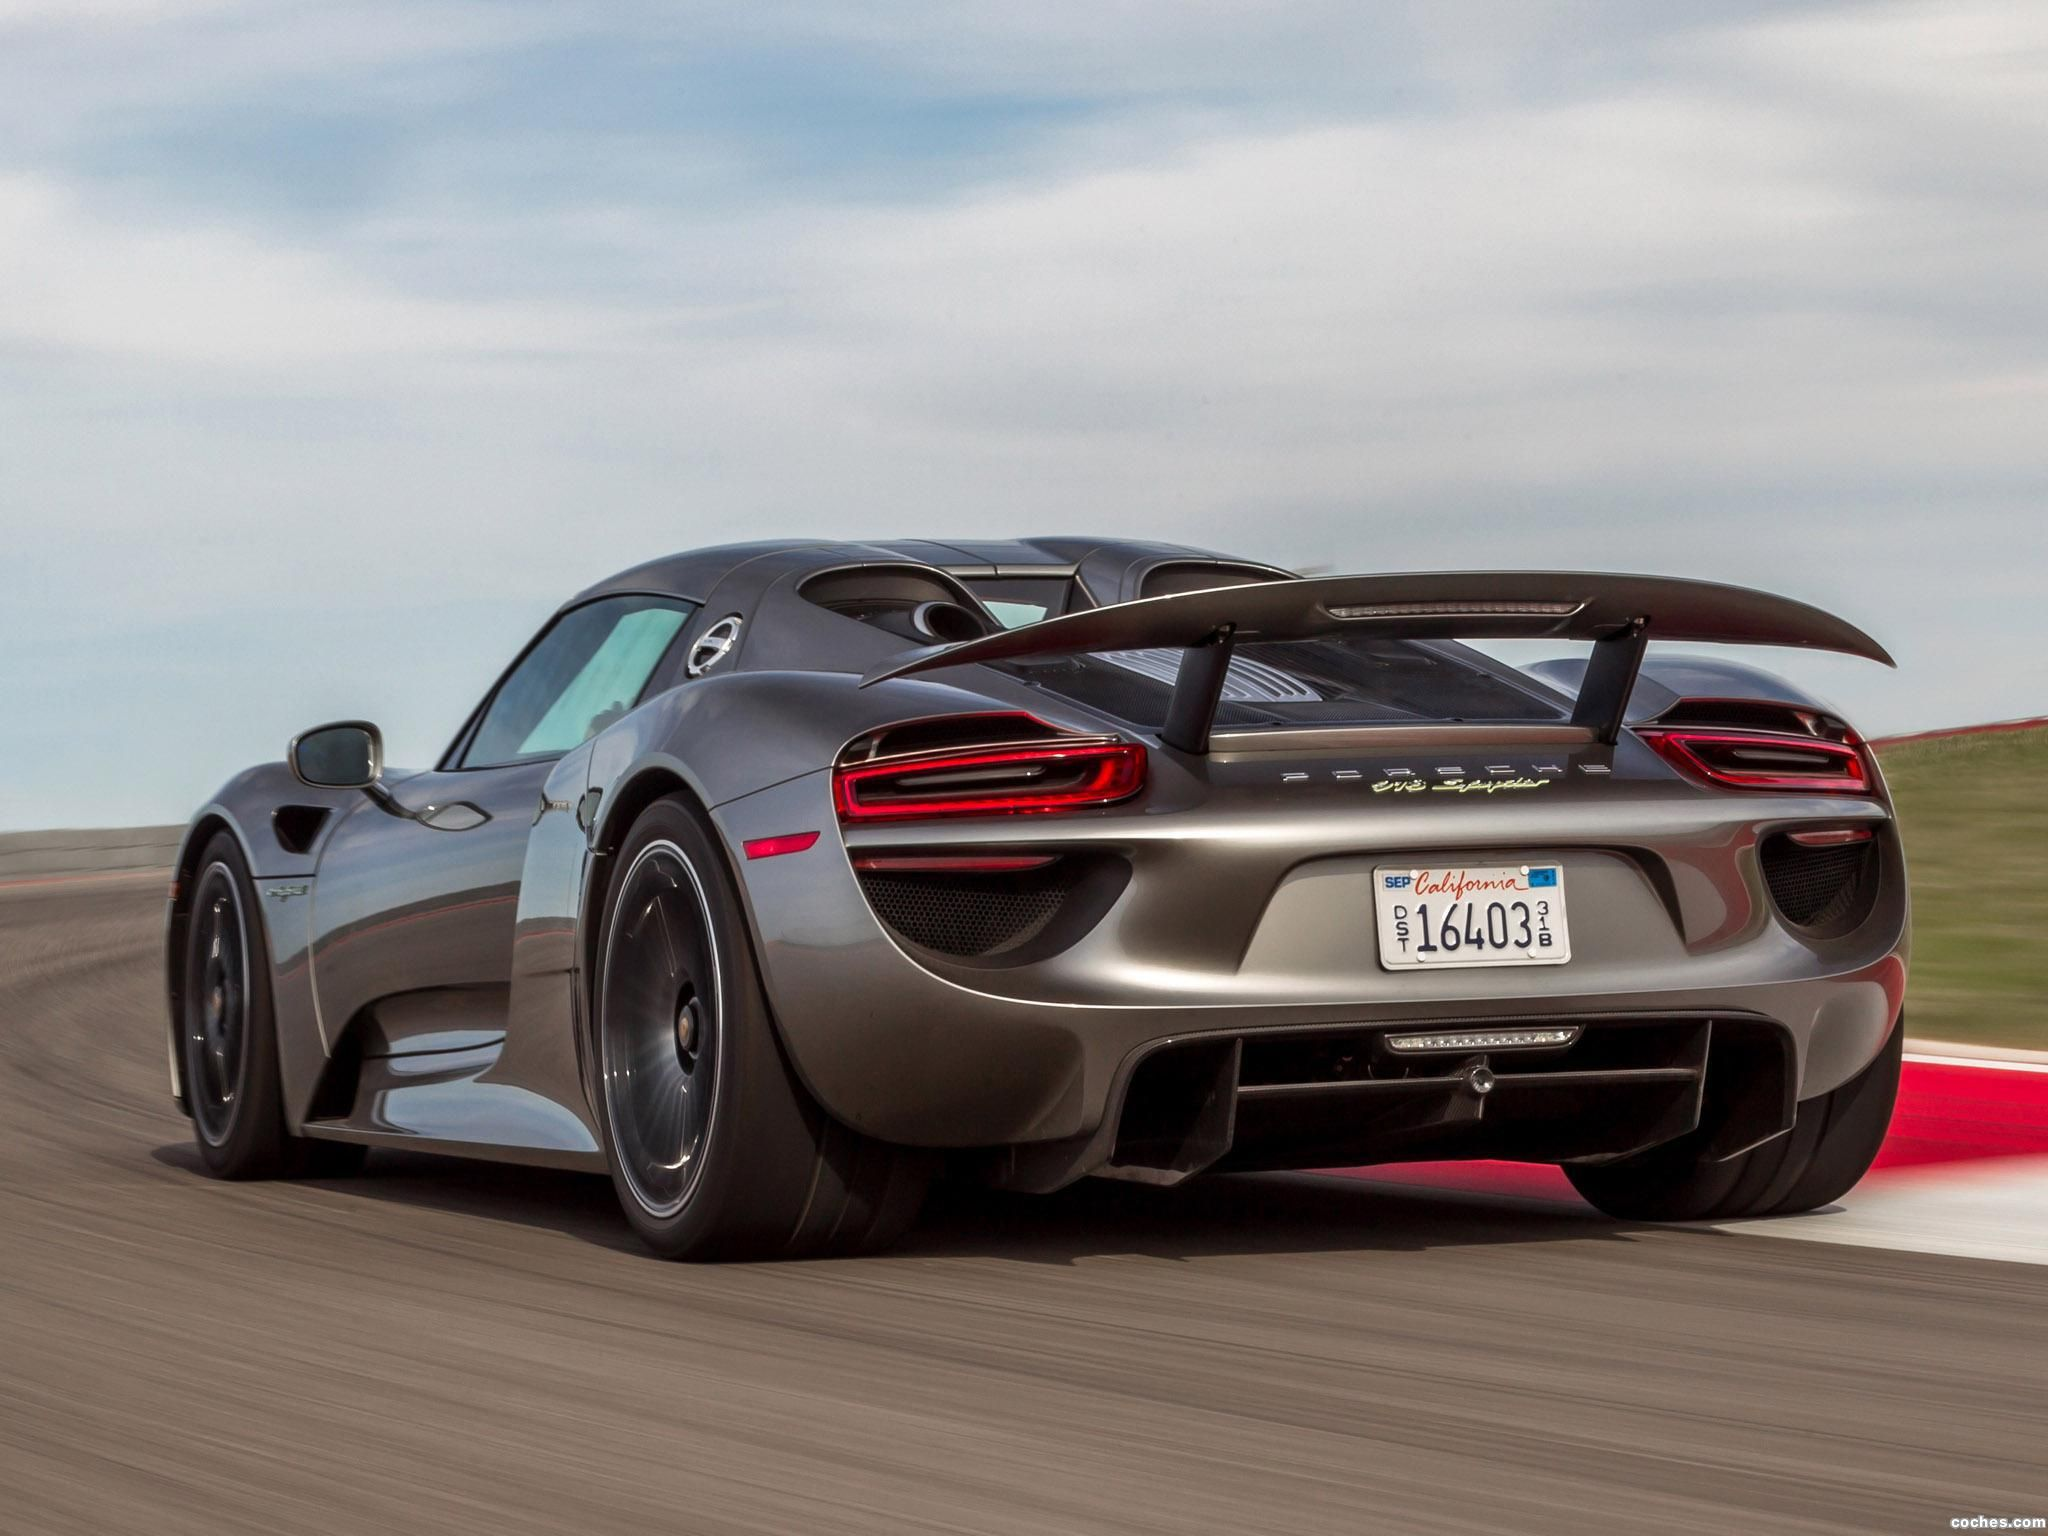 ef1b7cf4ef74a8586d9d816e4def4fef Fabulous How Much Does the Porsche 918 Spyder Concept Cost In Real Racing 3 Cars Trend